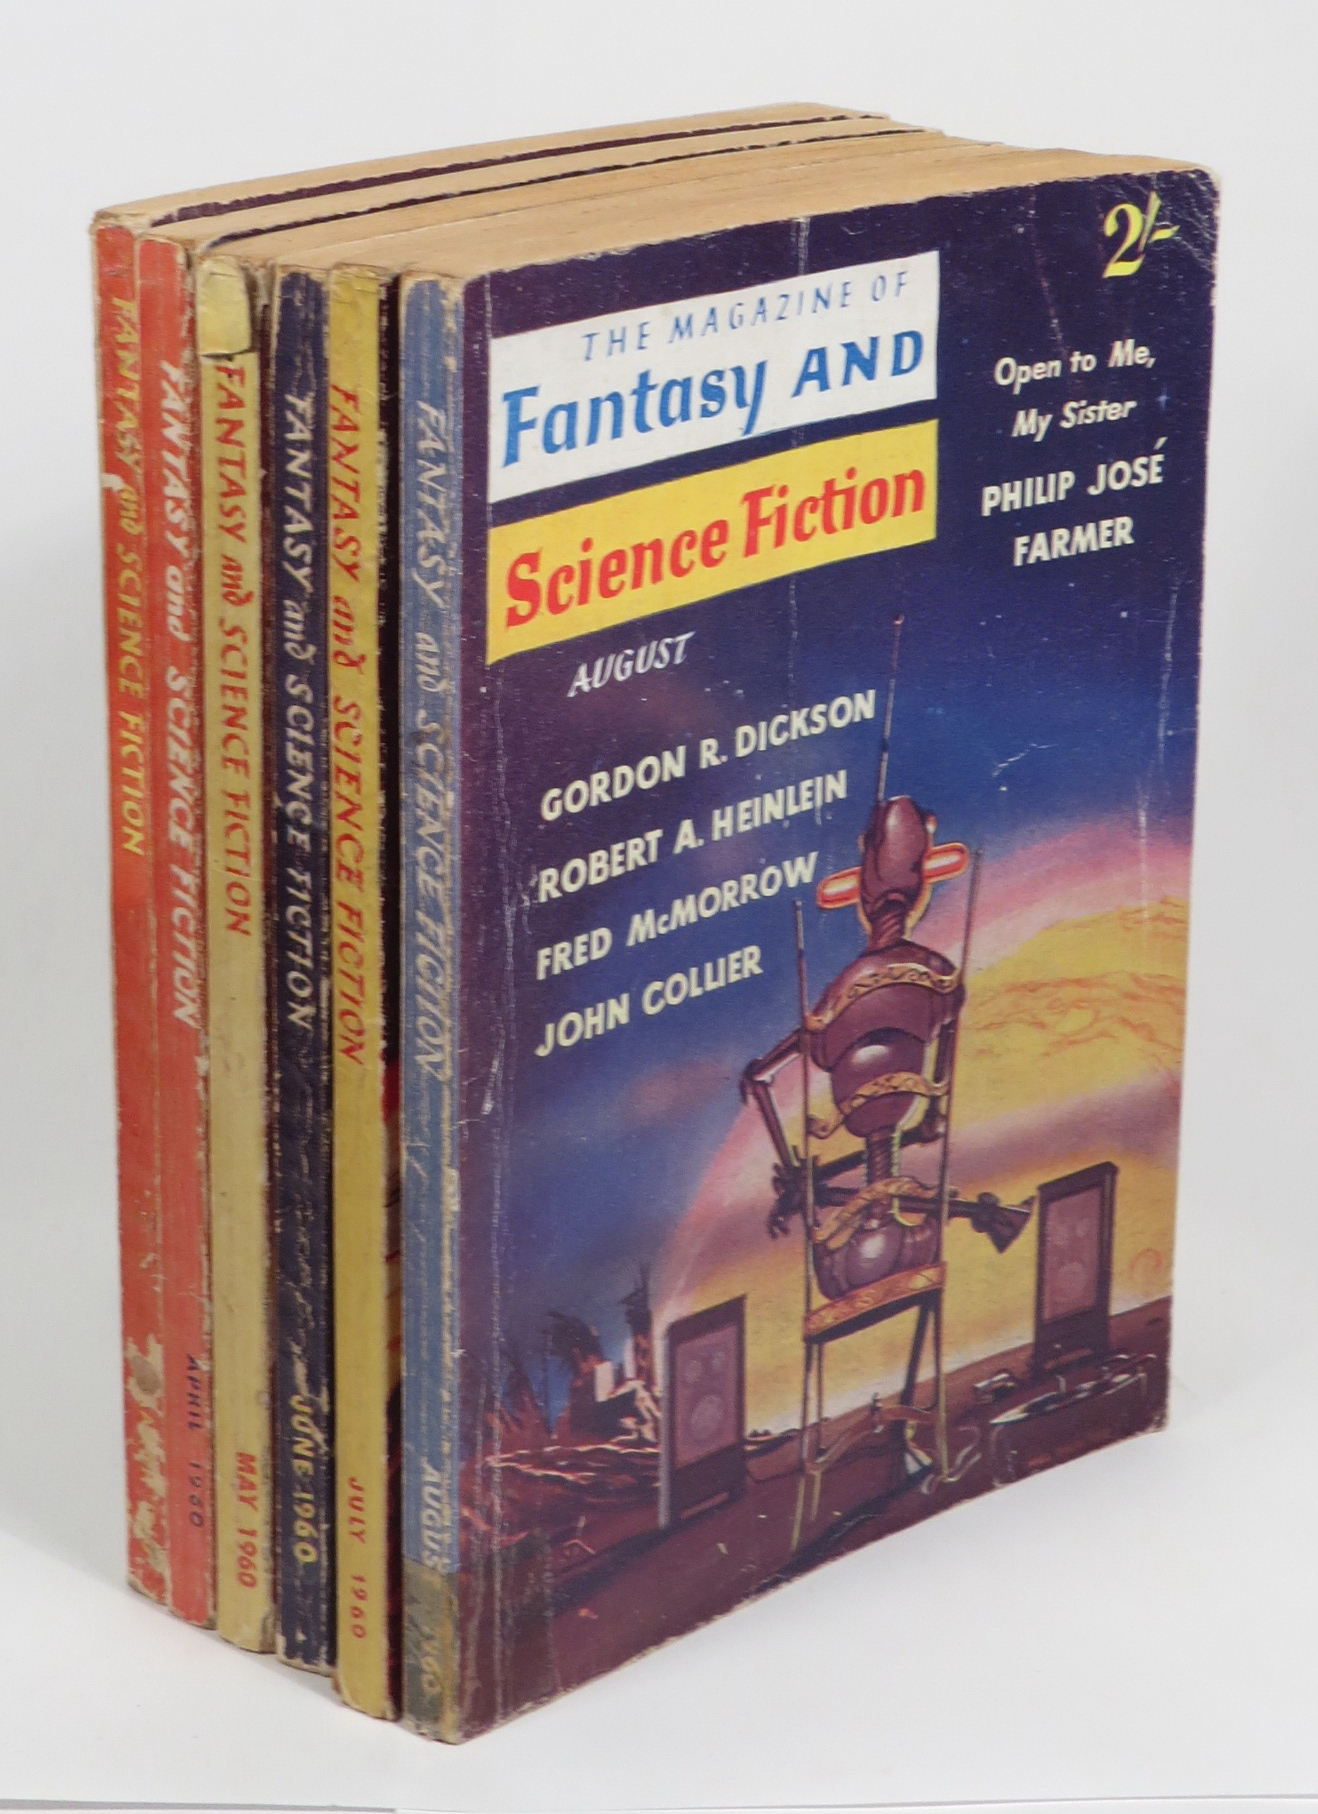 Image for The Magazine of Fantasy and Science Fiction [British edition. Vol. 1, Nos. 4, 5, 6, 7, 8, 9 (March, April, May, June, July, August 1960)